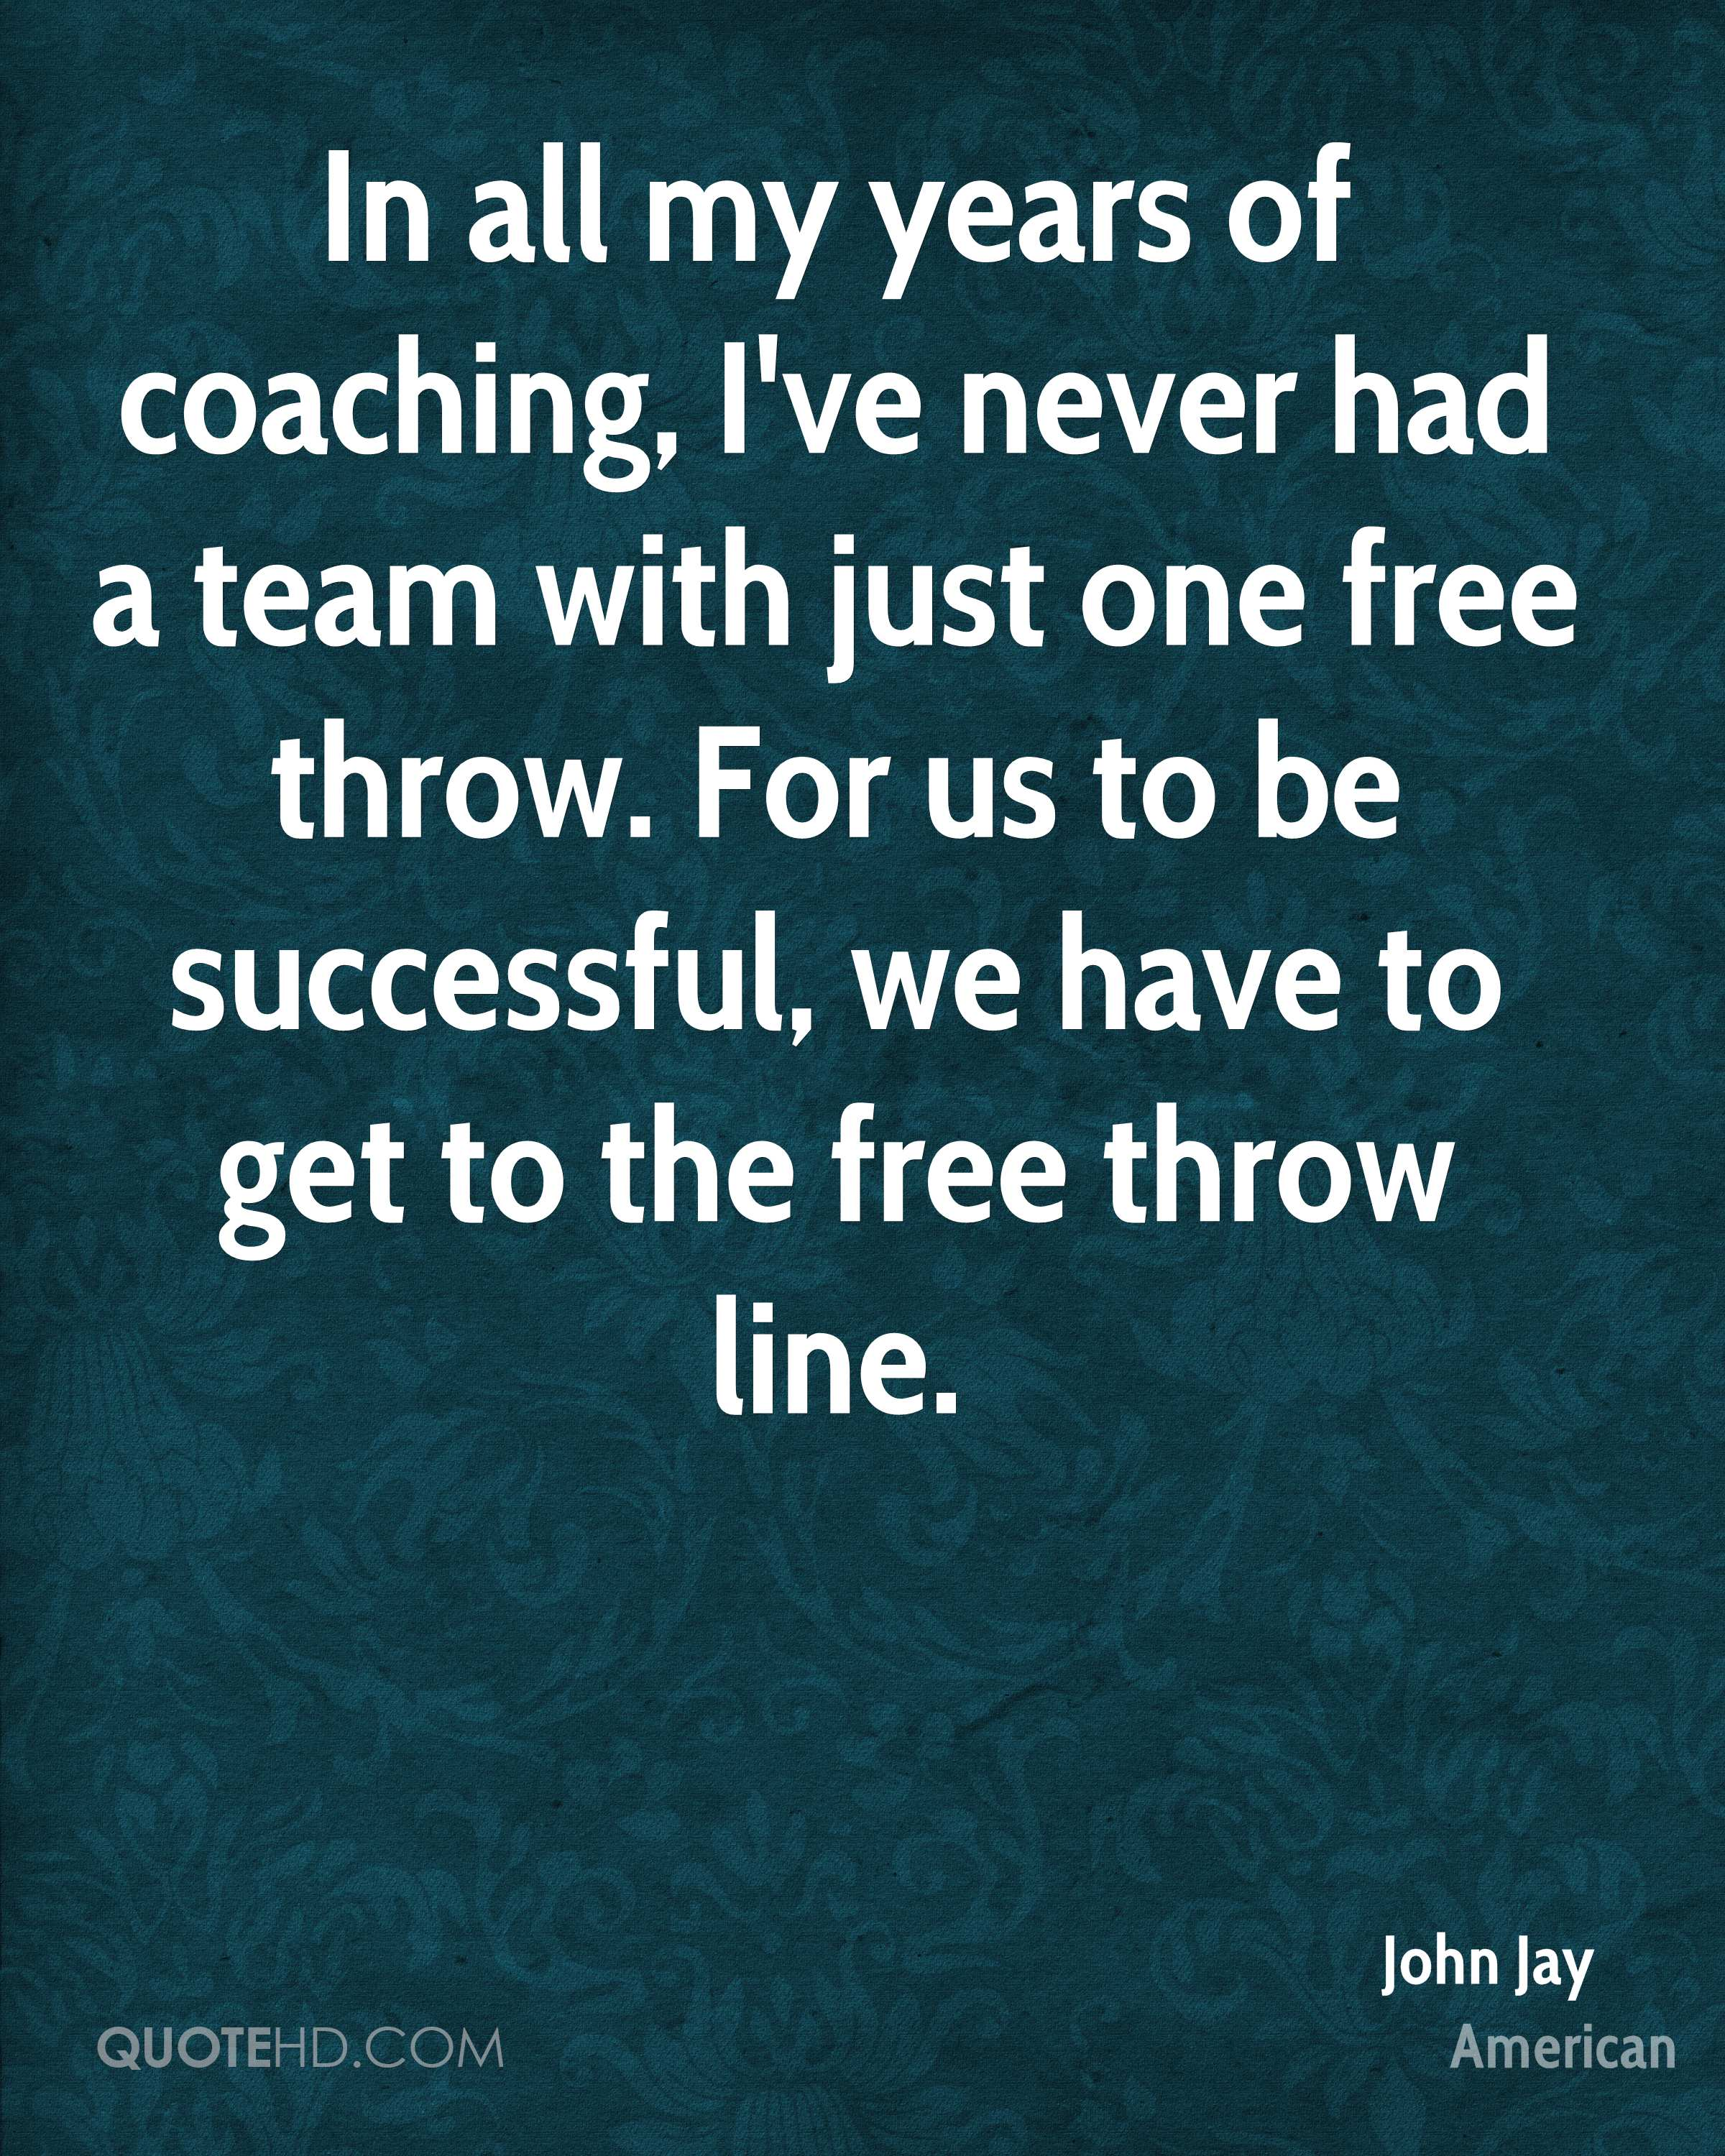 In all my years of coaching, I've never had a team with just one free throw. For us to be successful, we have to get to the free throw line.